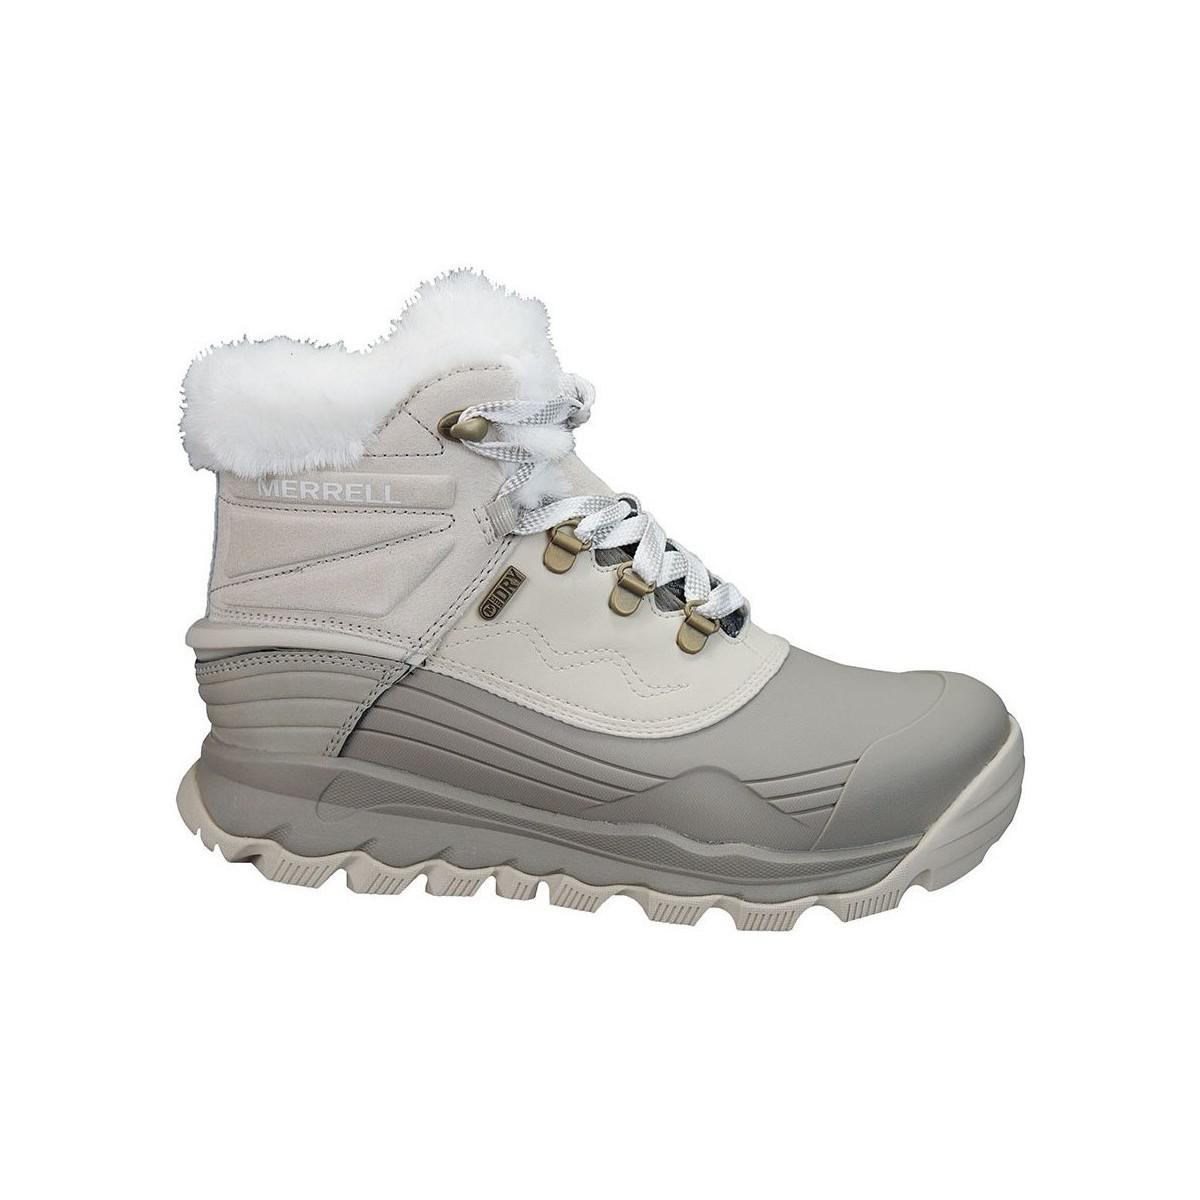 Merrell Thermo Shiver 6 Wp Women's Snow Boots In Beige in Natural